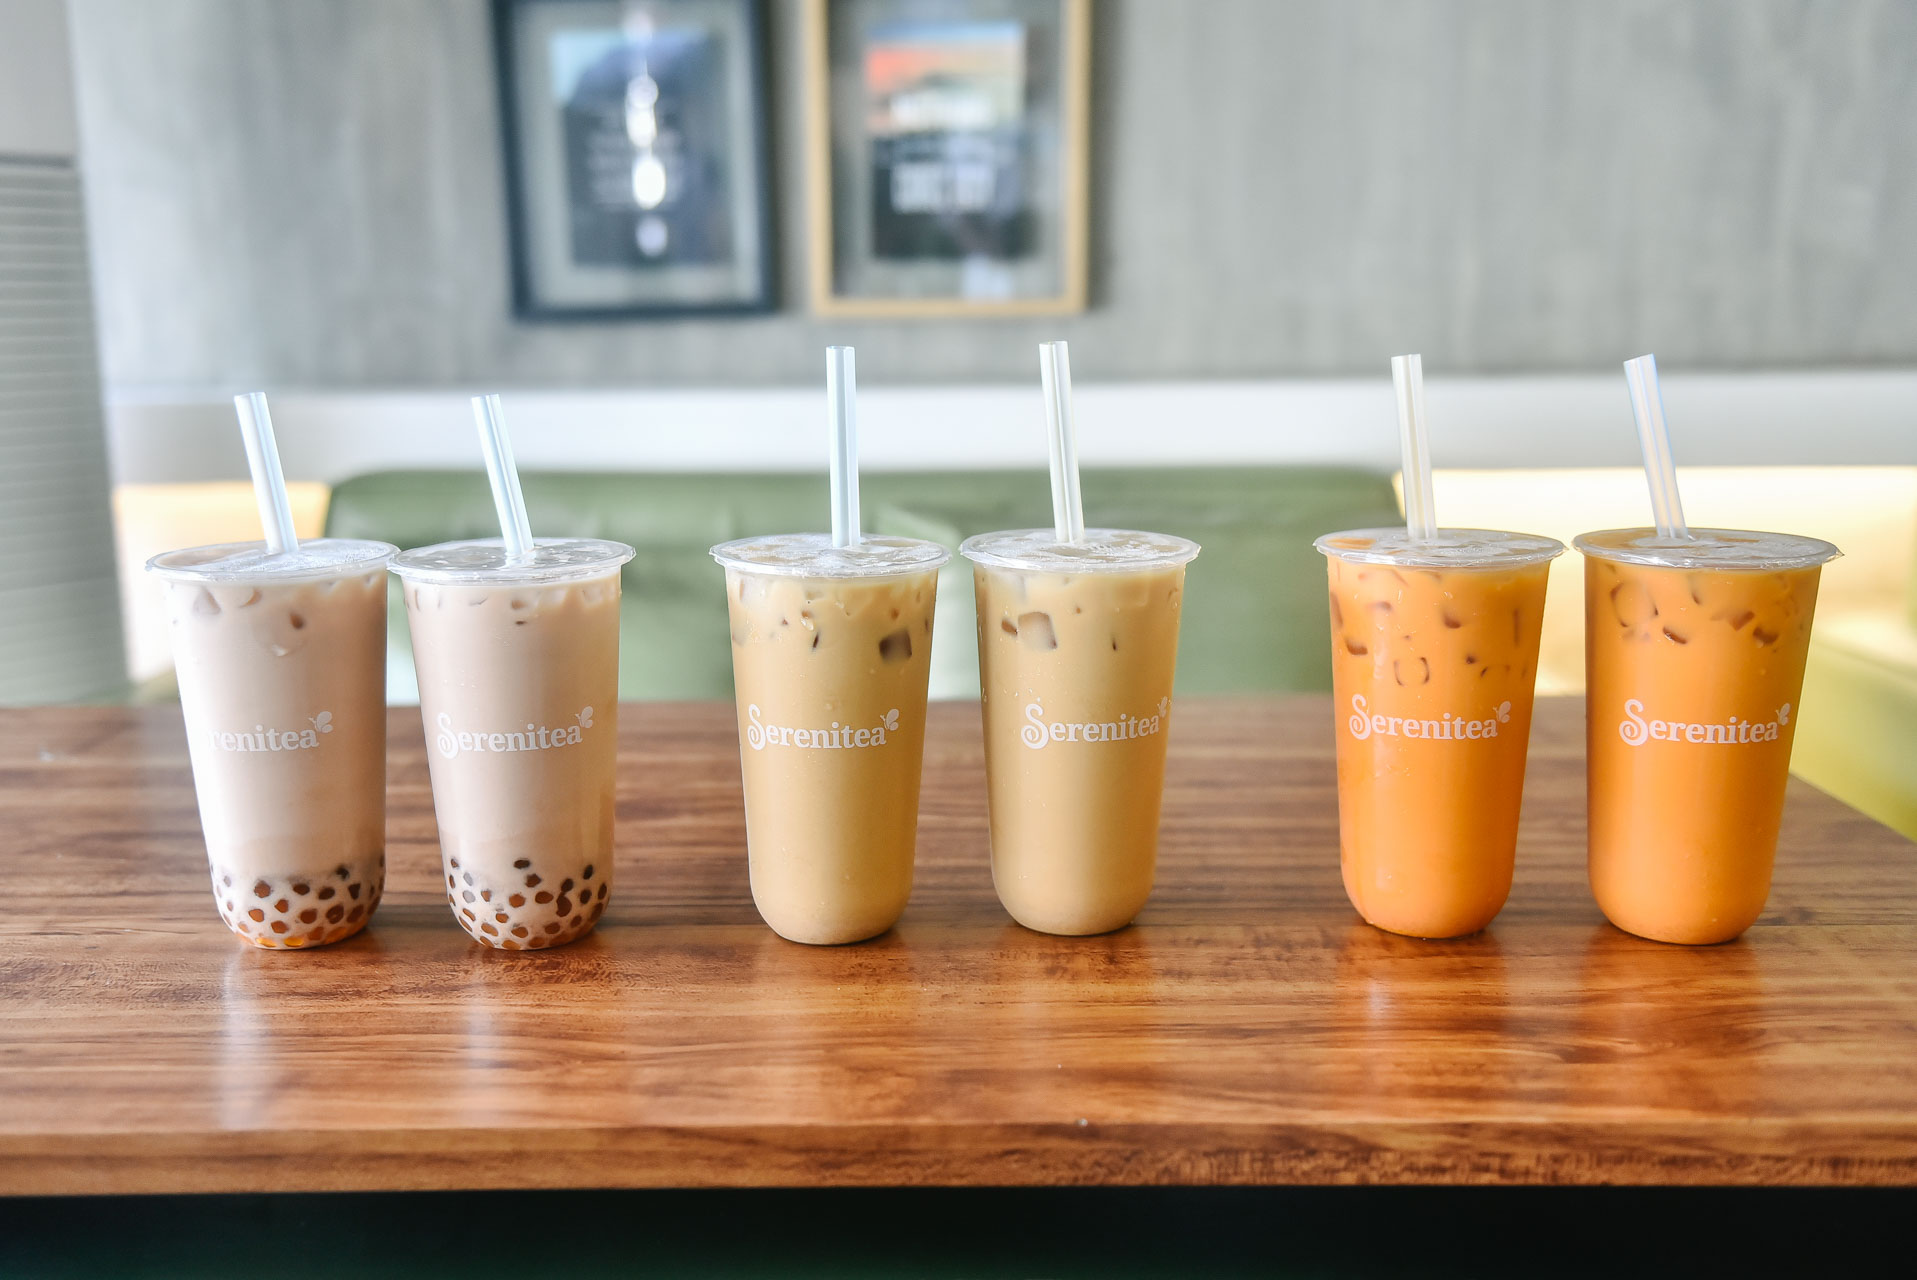 milk tea buy one get one serenitea thai tea wintermelon hong kong milk tea